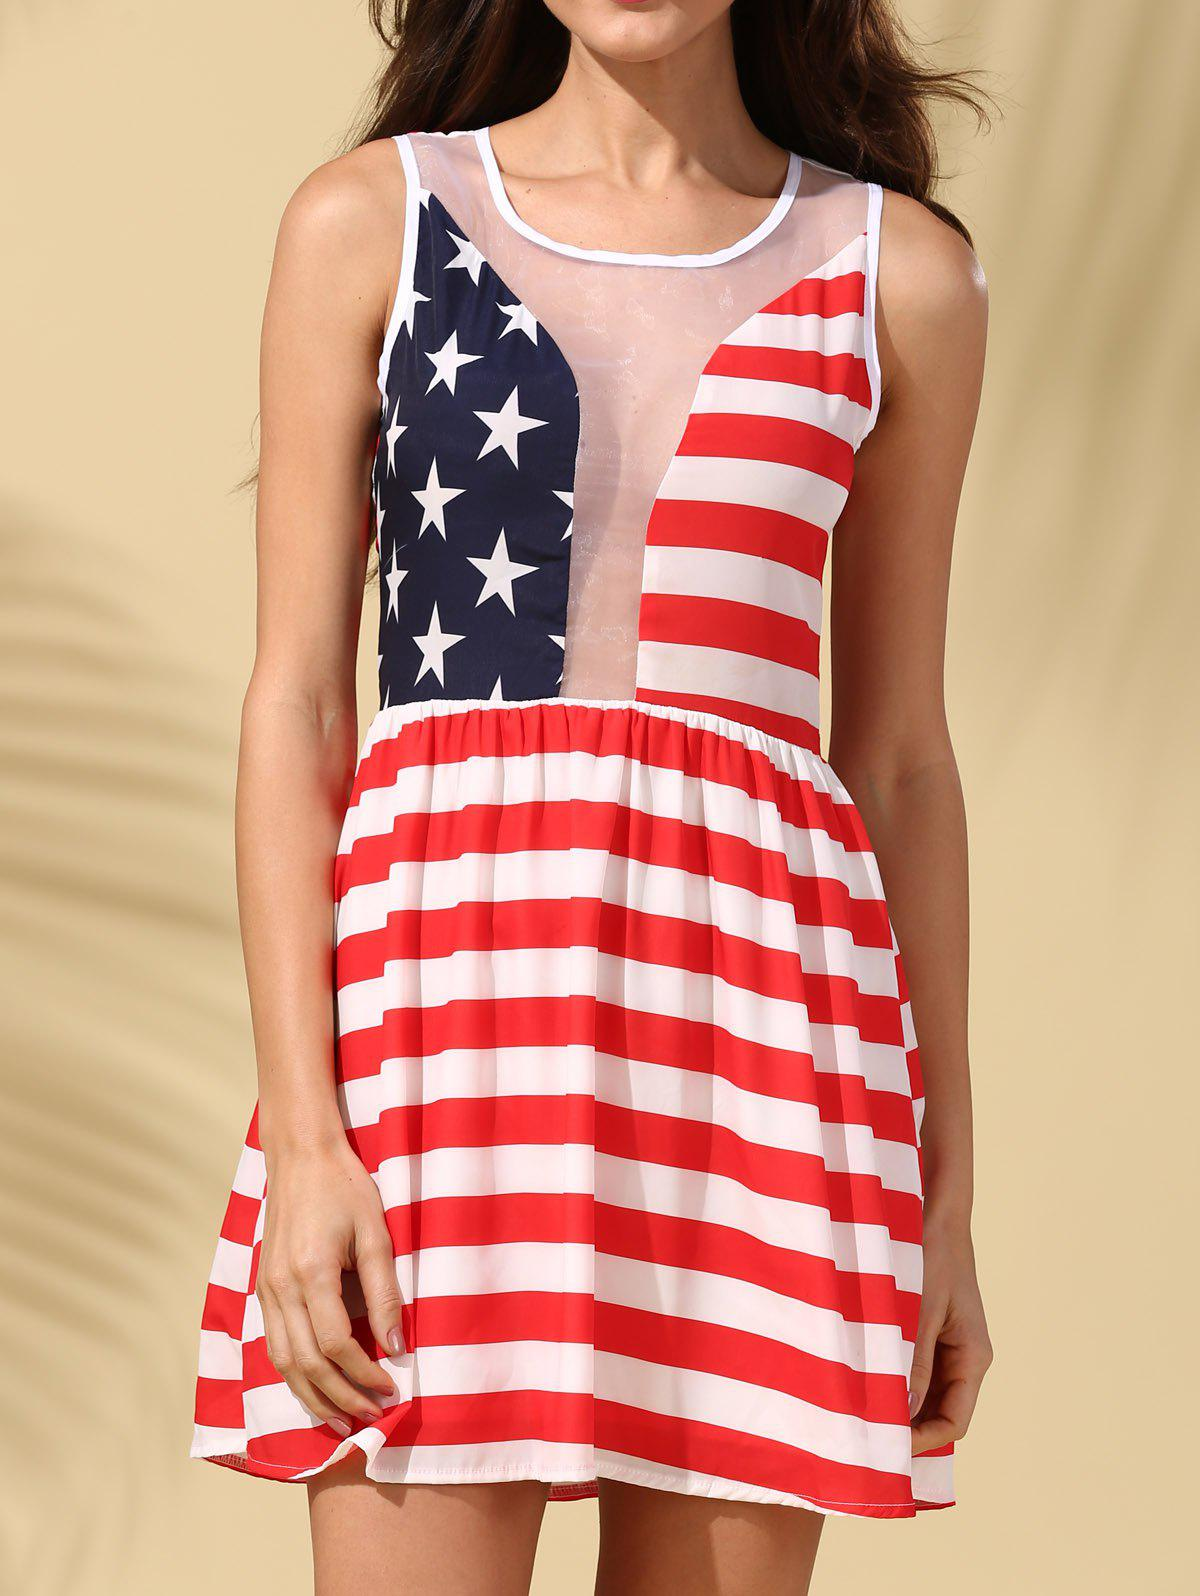 Stylish Women's Scoop Neck Sleeveless American Flag See-Through Dress - RED S